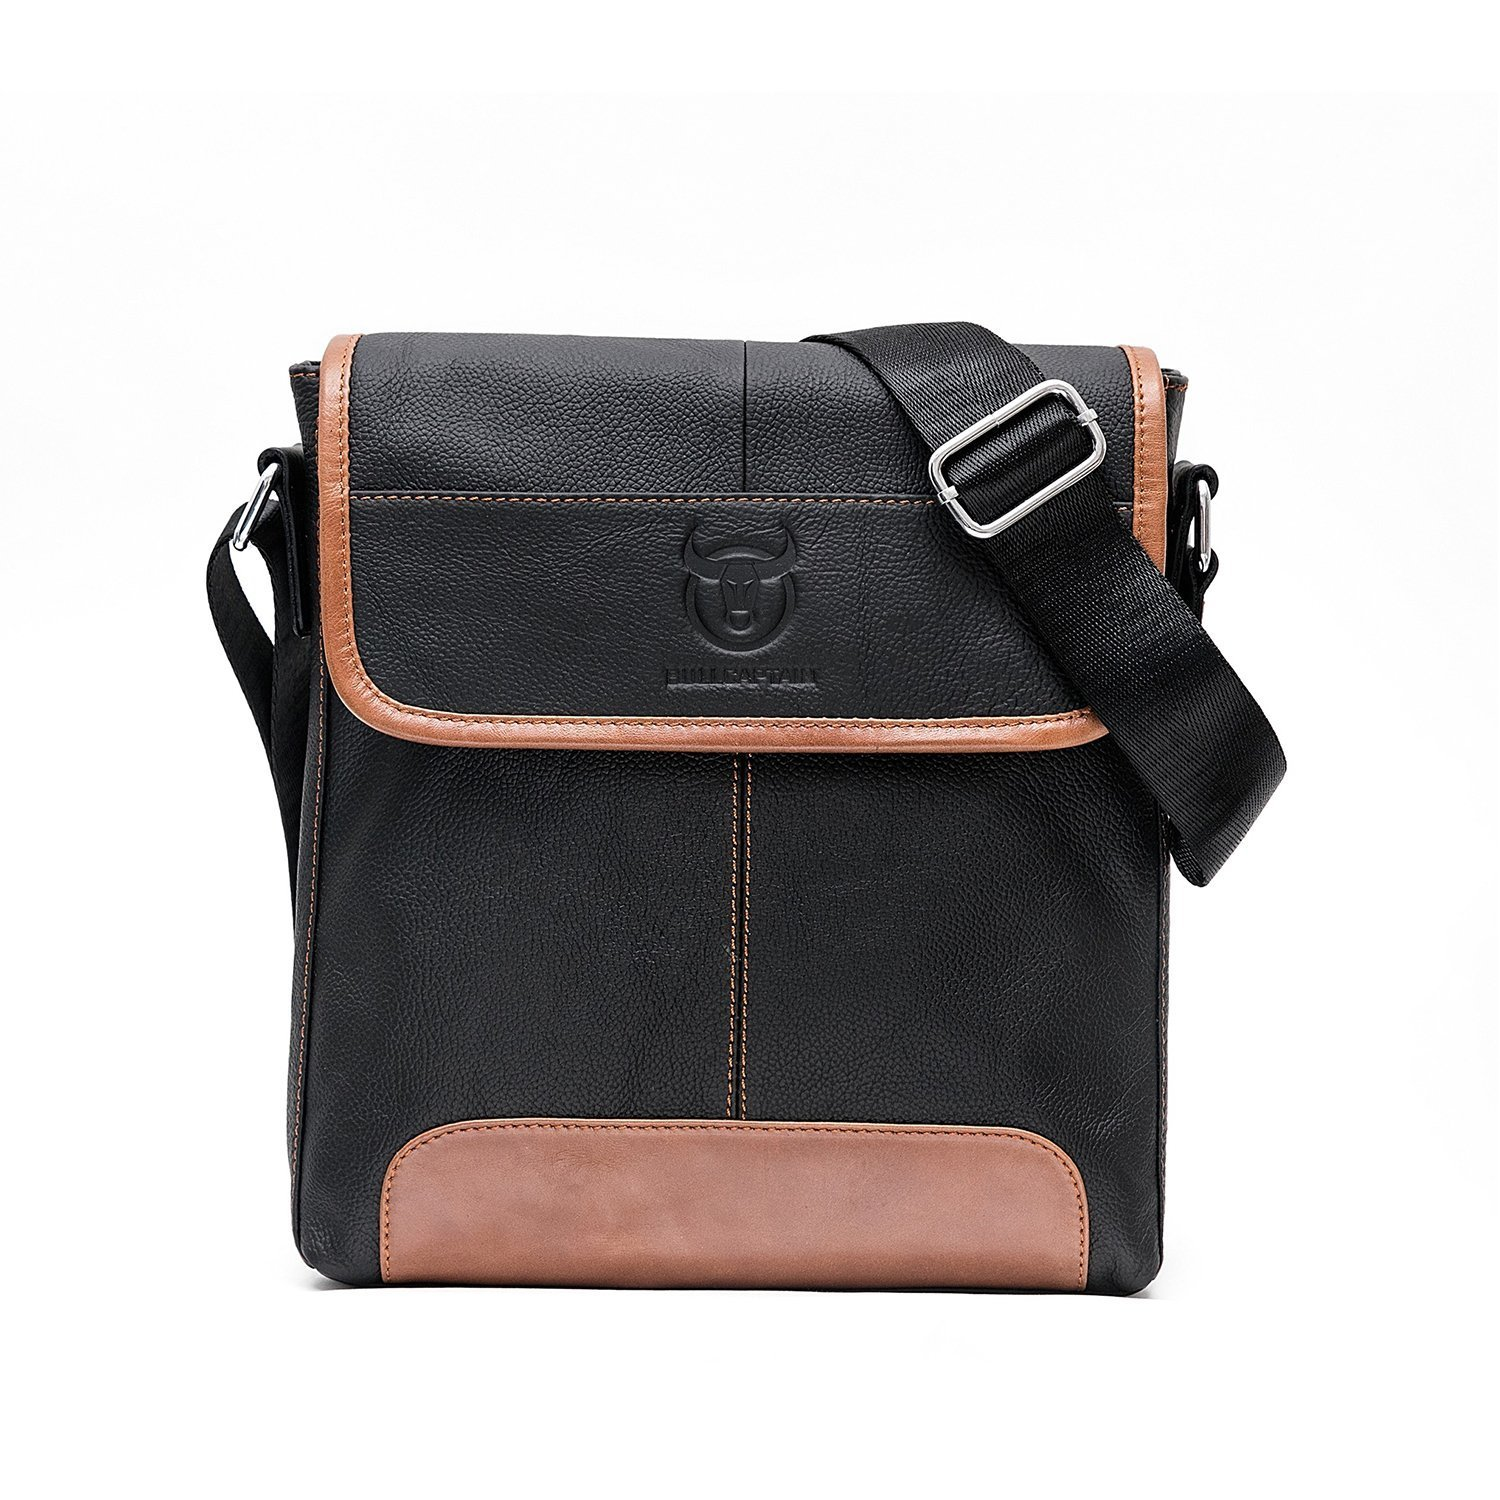 BULL CAPTAIN Black 10 inch Sturdy Casual Leather Man Bag iPad Bag Laptop Messenger Satchel Sling City Flapover Bag ZB-031